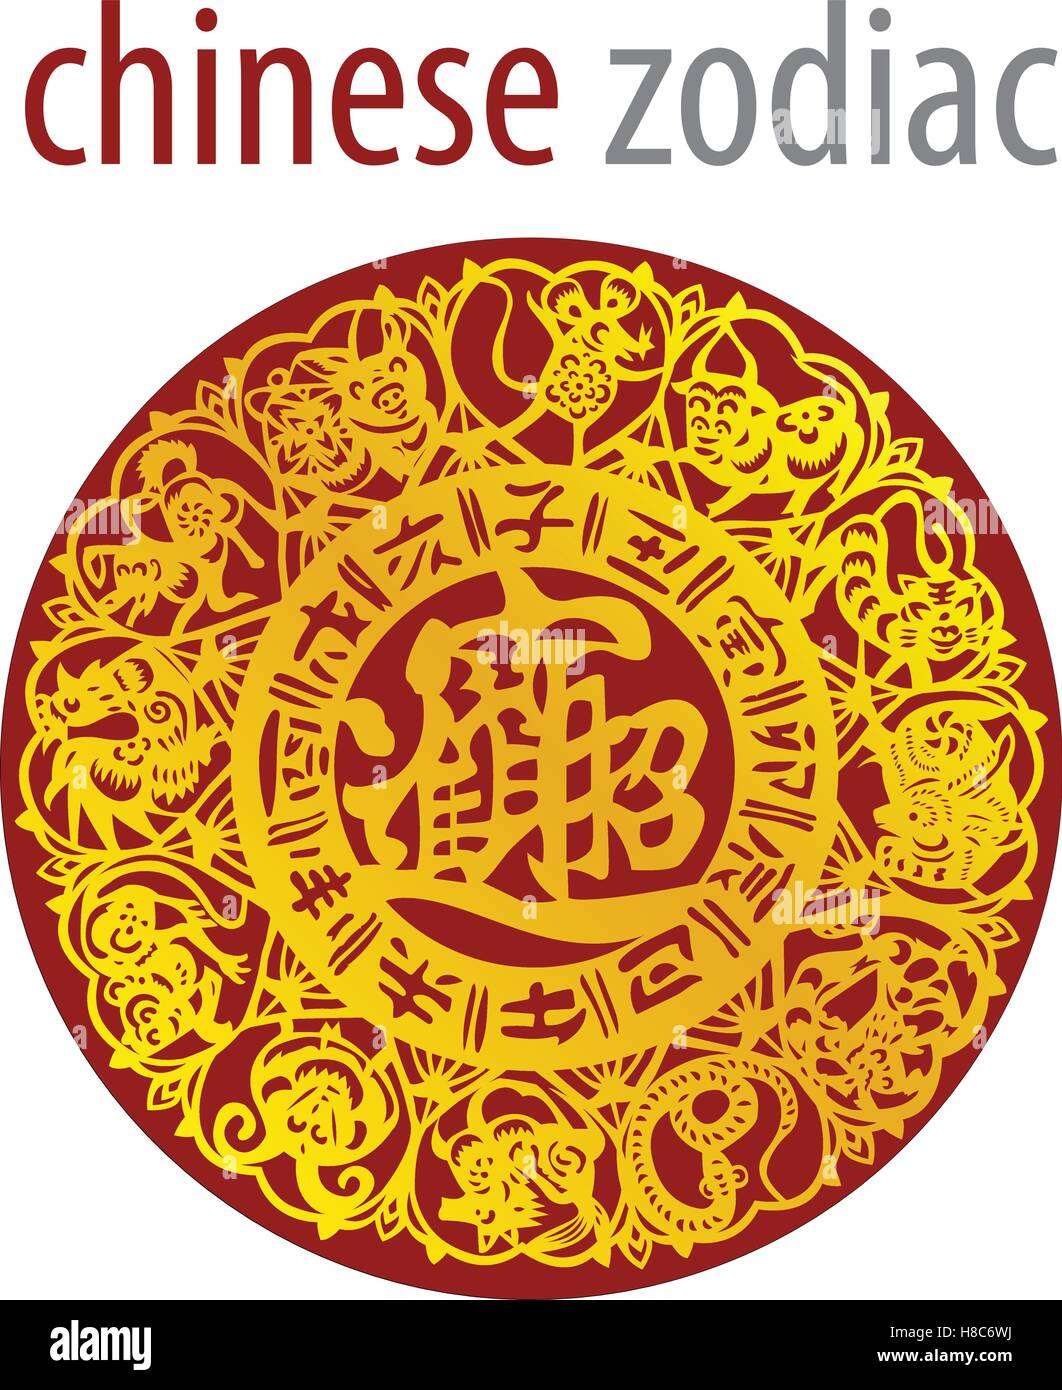 Zodiac chart stock photos zodiac chart stock images alamy chinese zodiac wheel with signs and the five elements symbols stock image nvjuhfo Images